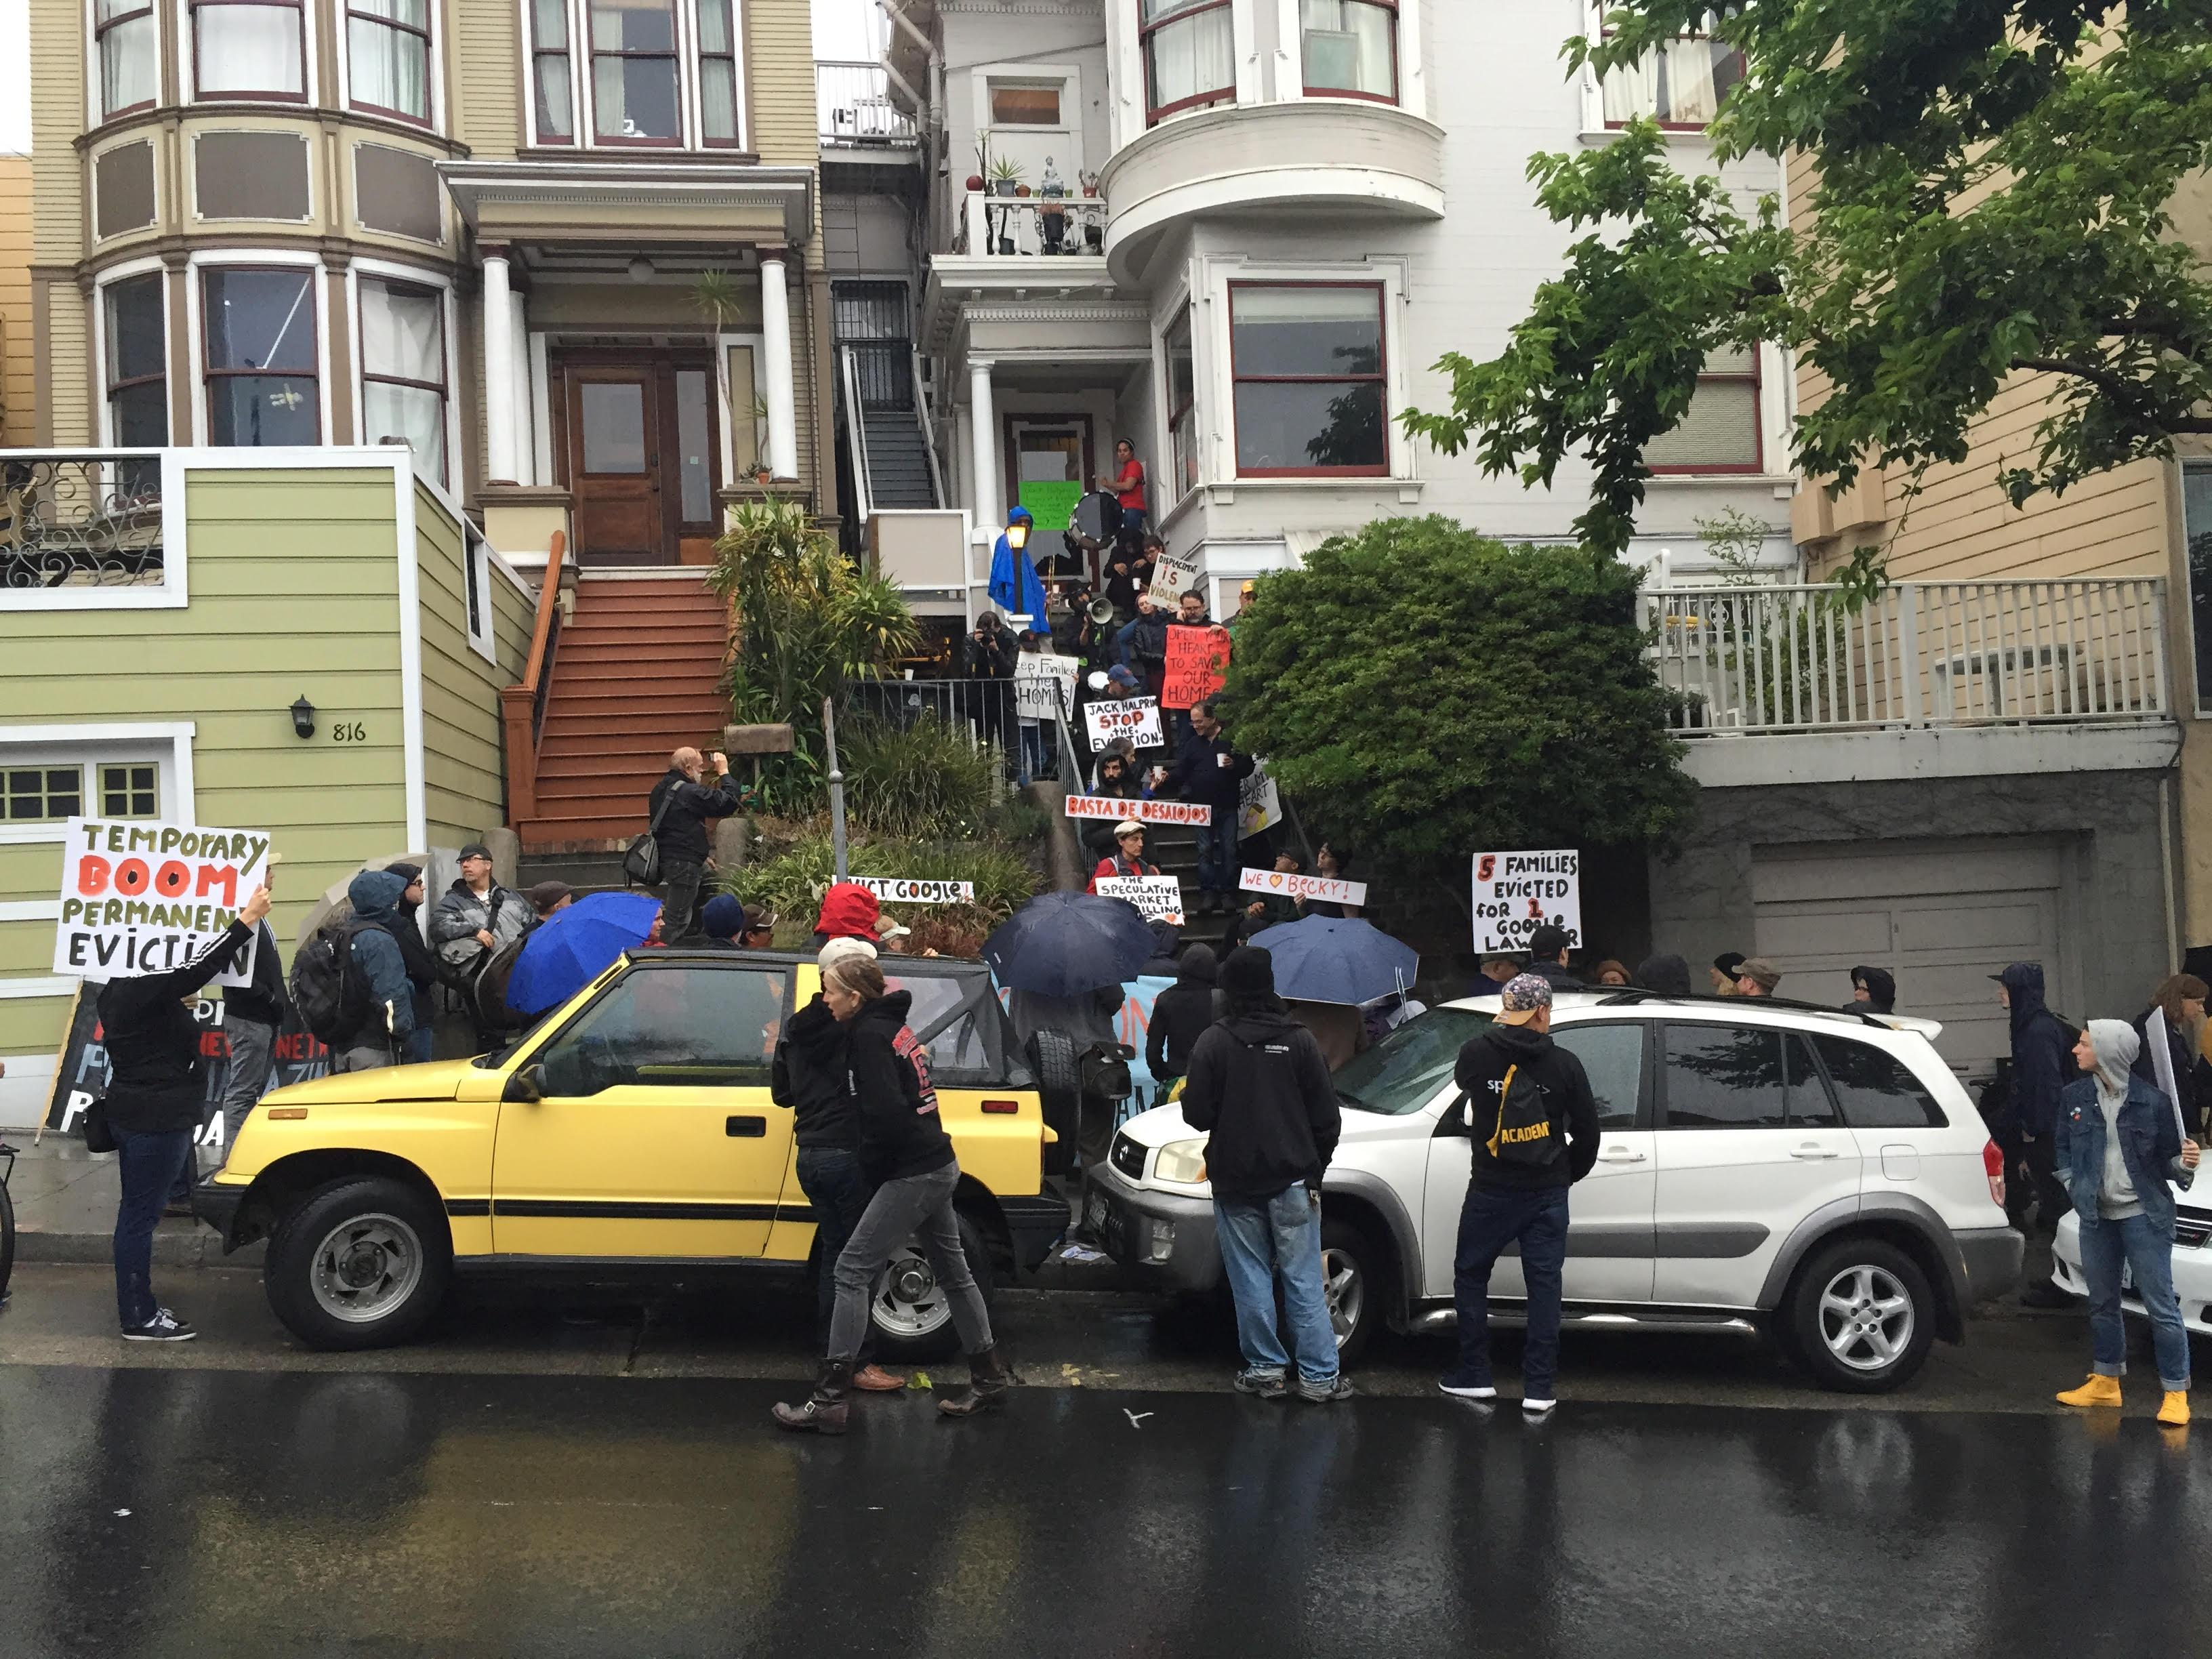 San Francisco eviction